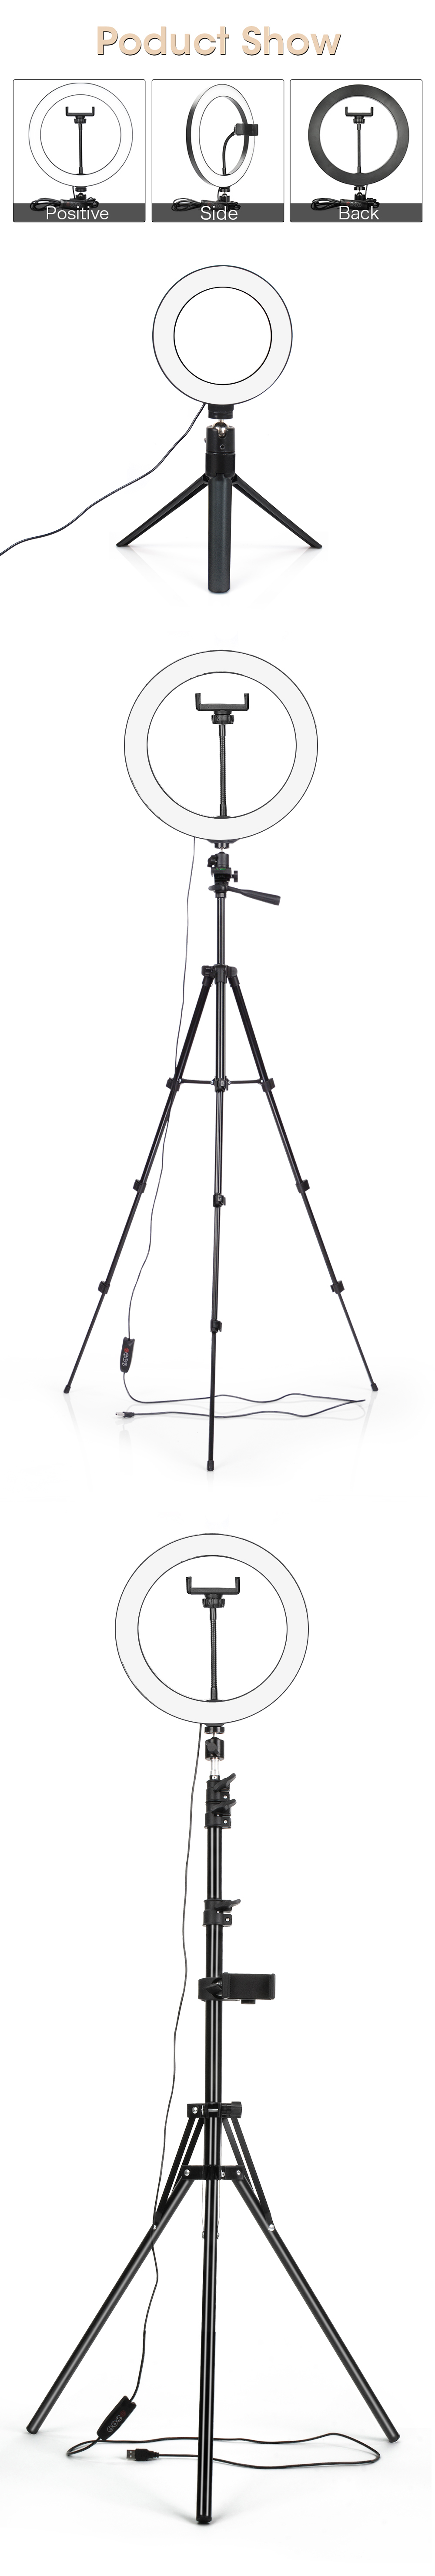 Hcde376a6dc2d461cb6b625a8a33ea8adG LED Ring Light Photography Lighting Selfie Lamp USB Dimmable With Tripod For Youtube Photo Studio Makeup Video Live